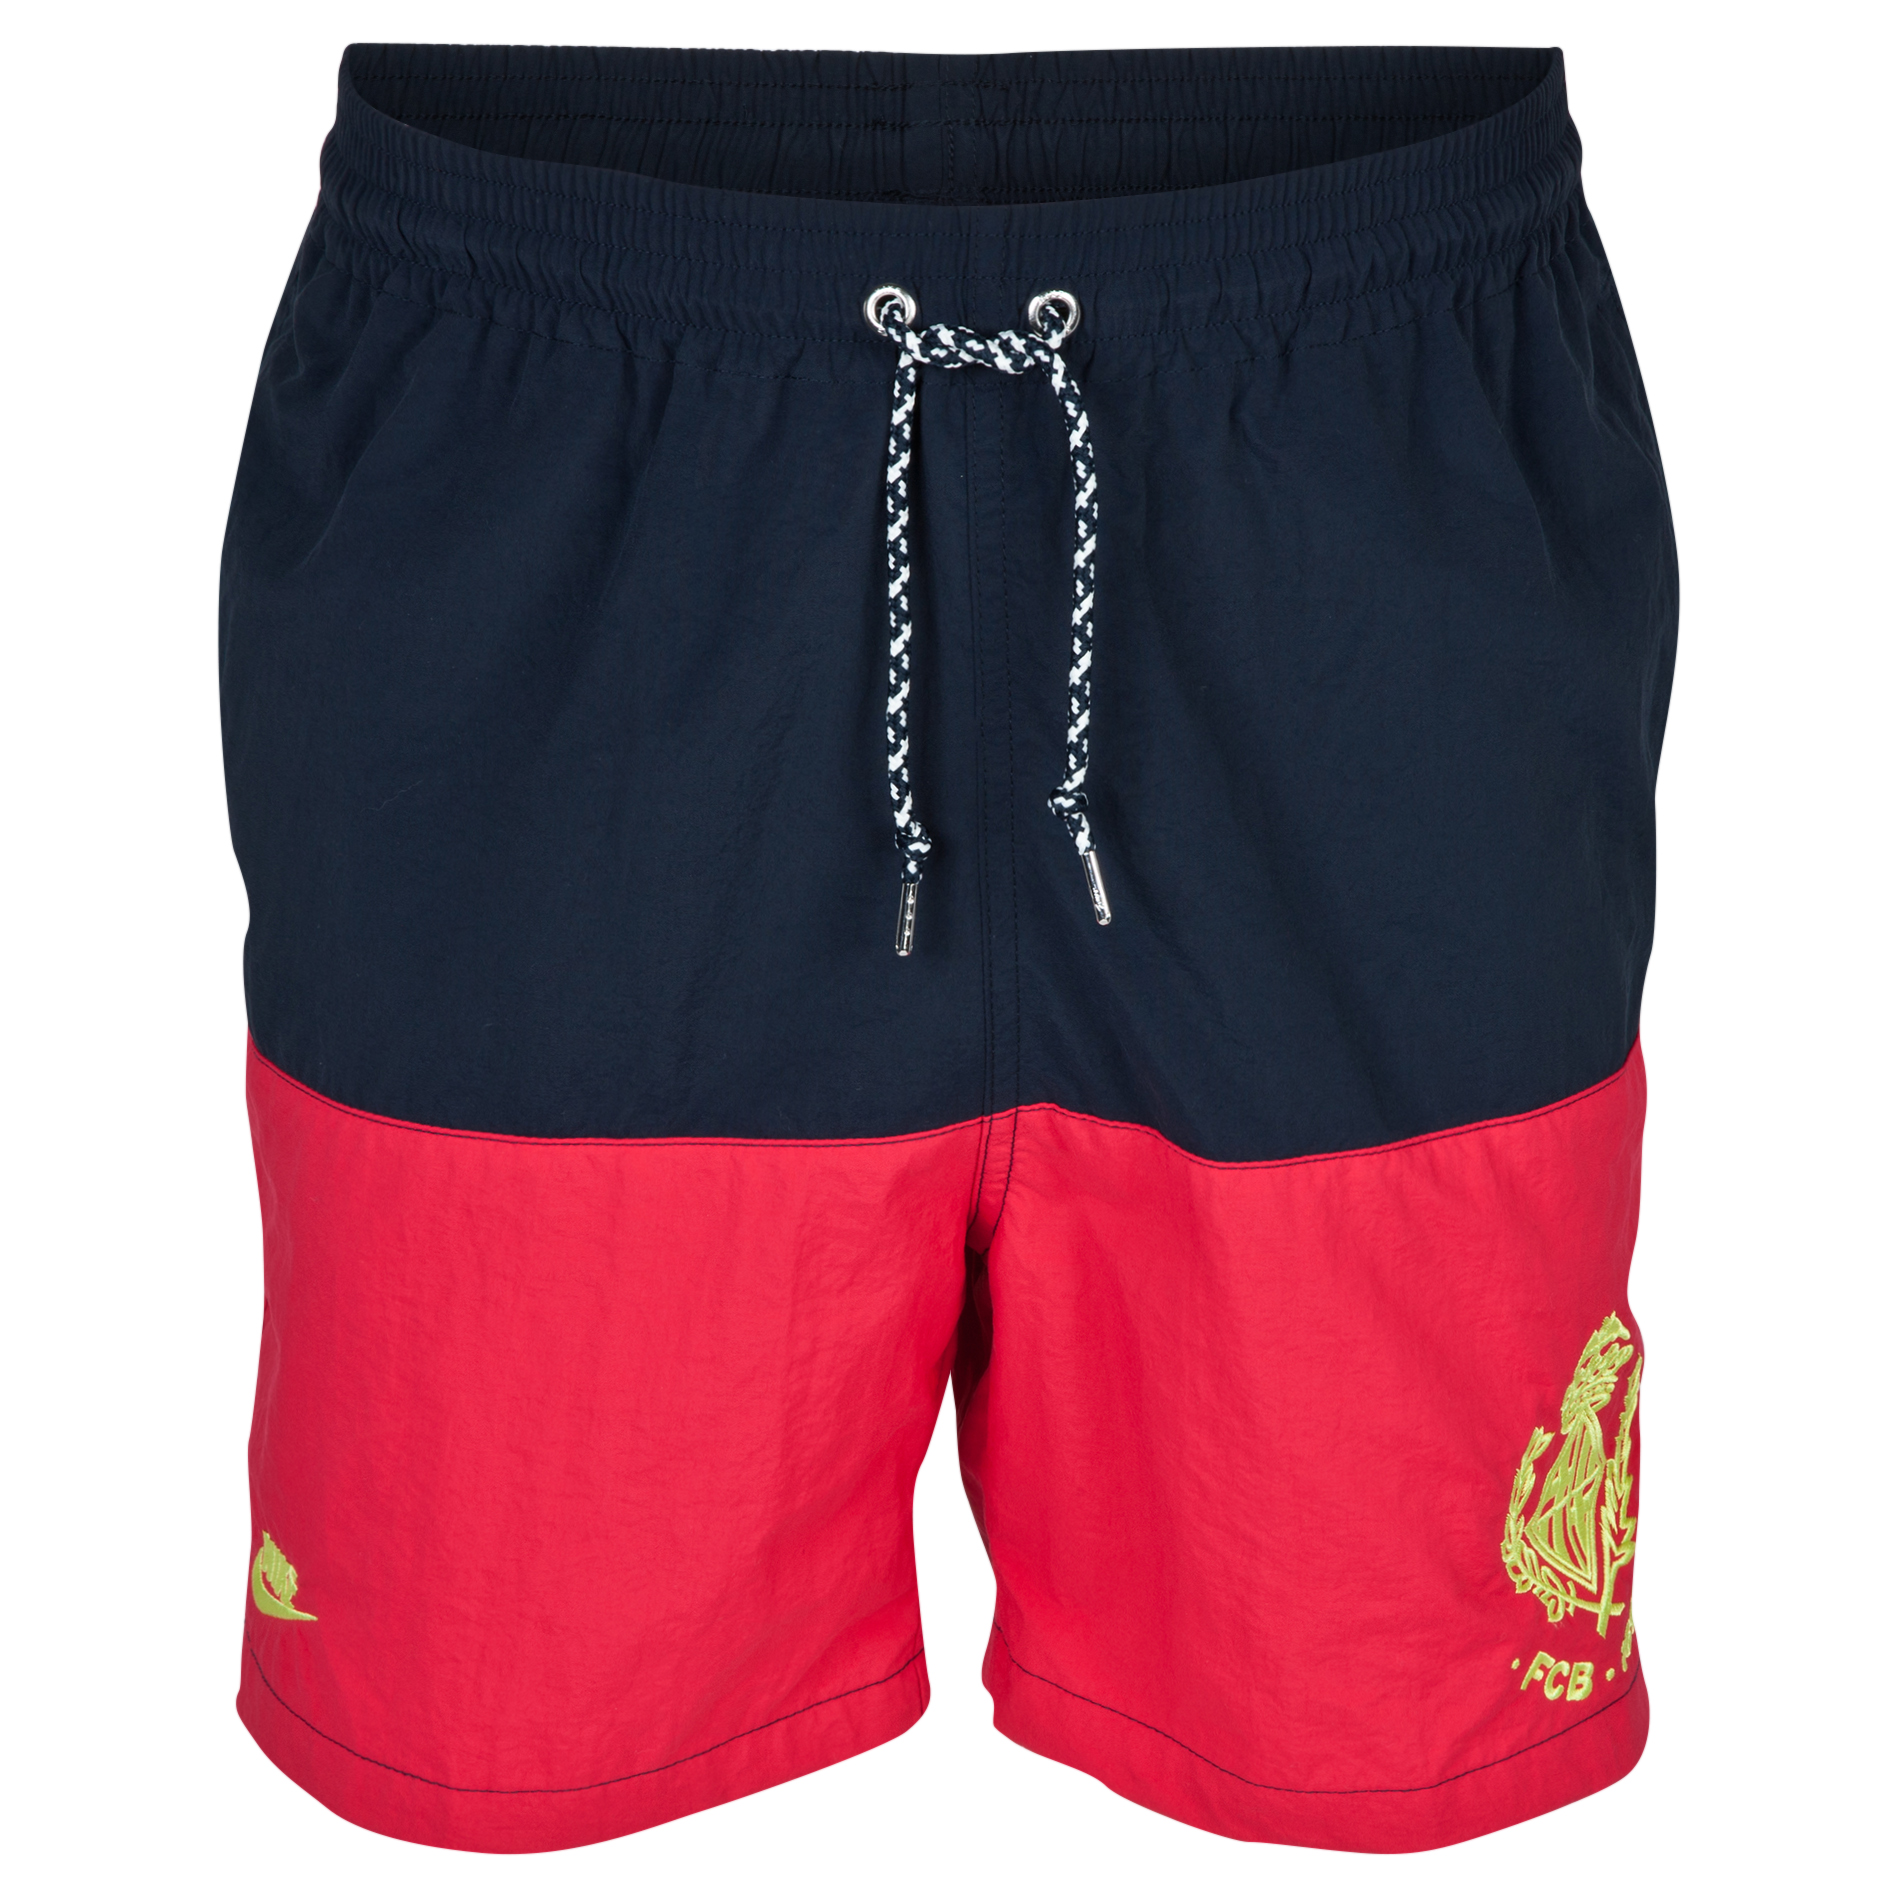 Barcelona Covert Team Shorts - Dark Obsidian/Legion Red/Venom Green Dk Blue